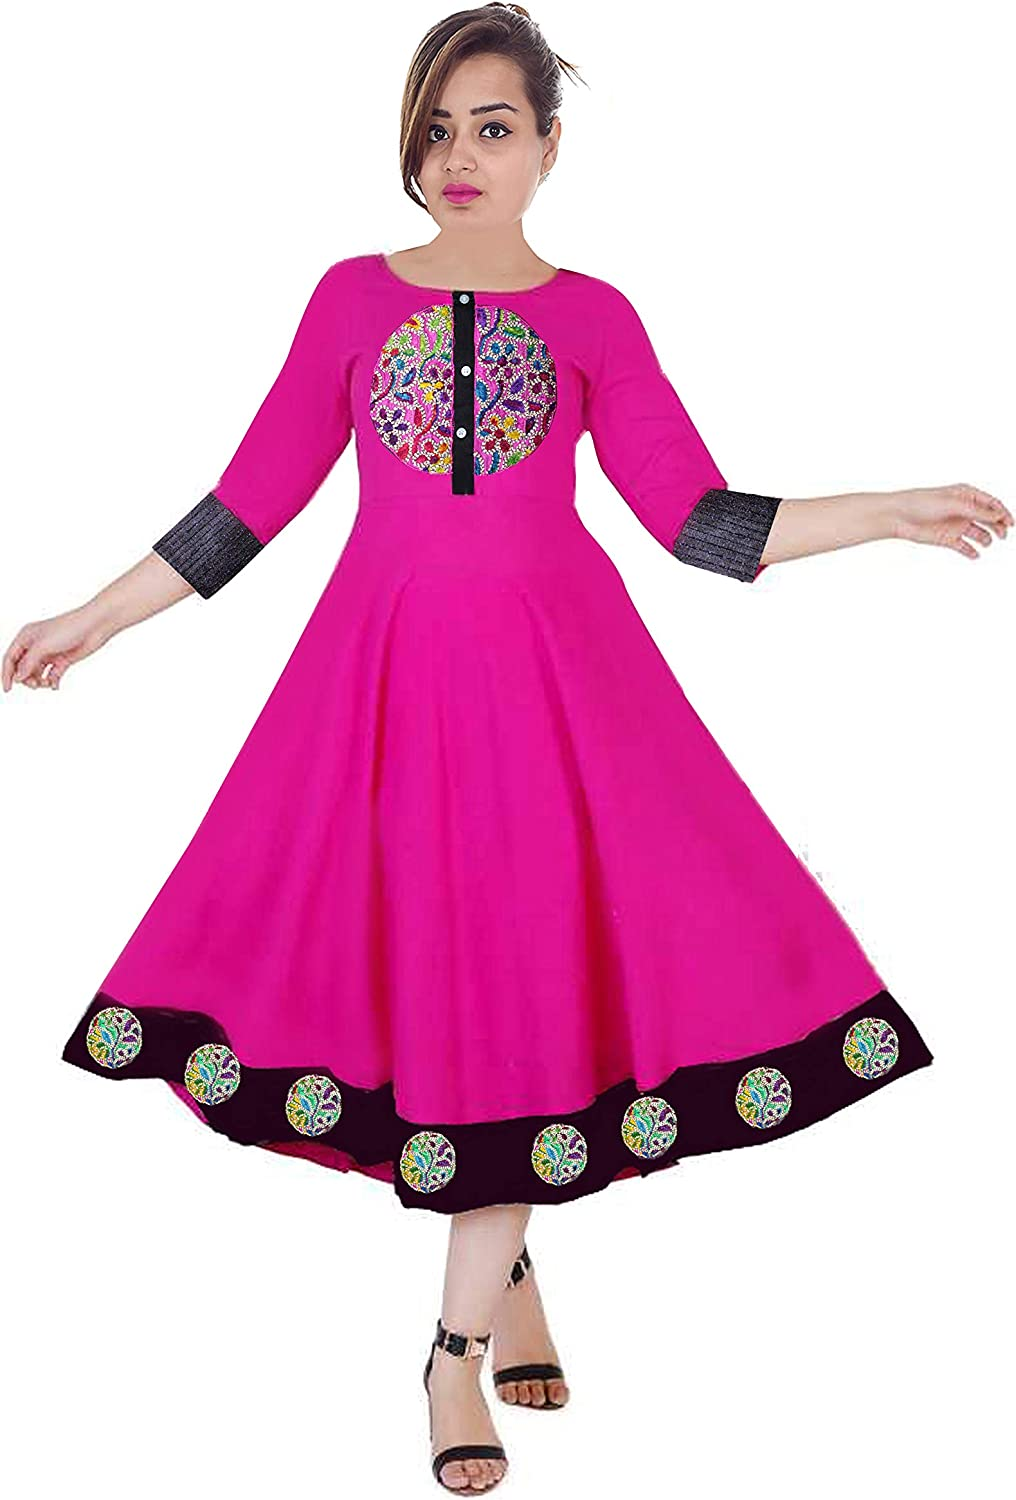 Lakkar Haveli Women Long Dress Pink Embroidered Long Tunic Indian Frock Suit Ethnic Party Wear Maxi Dress